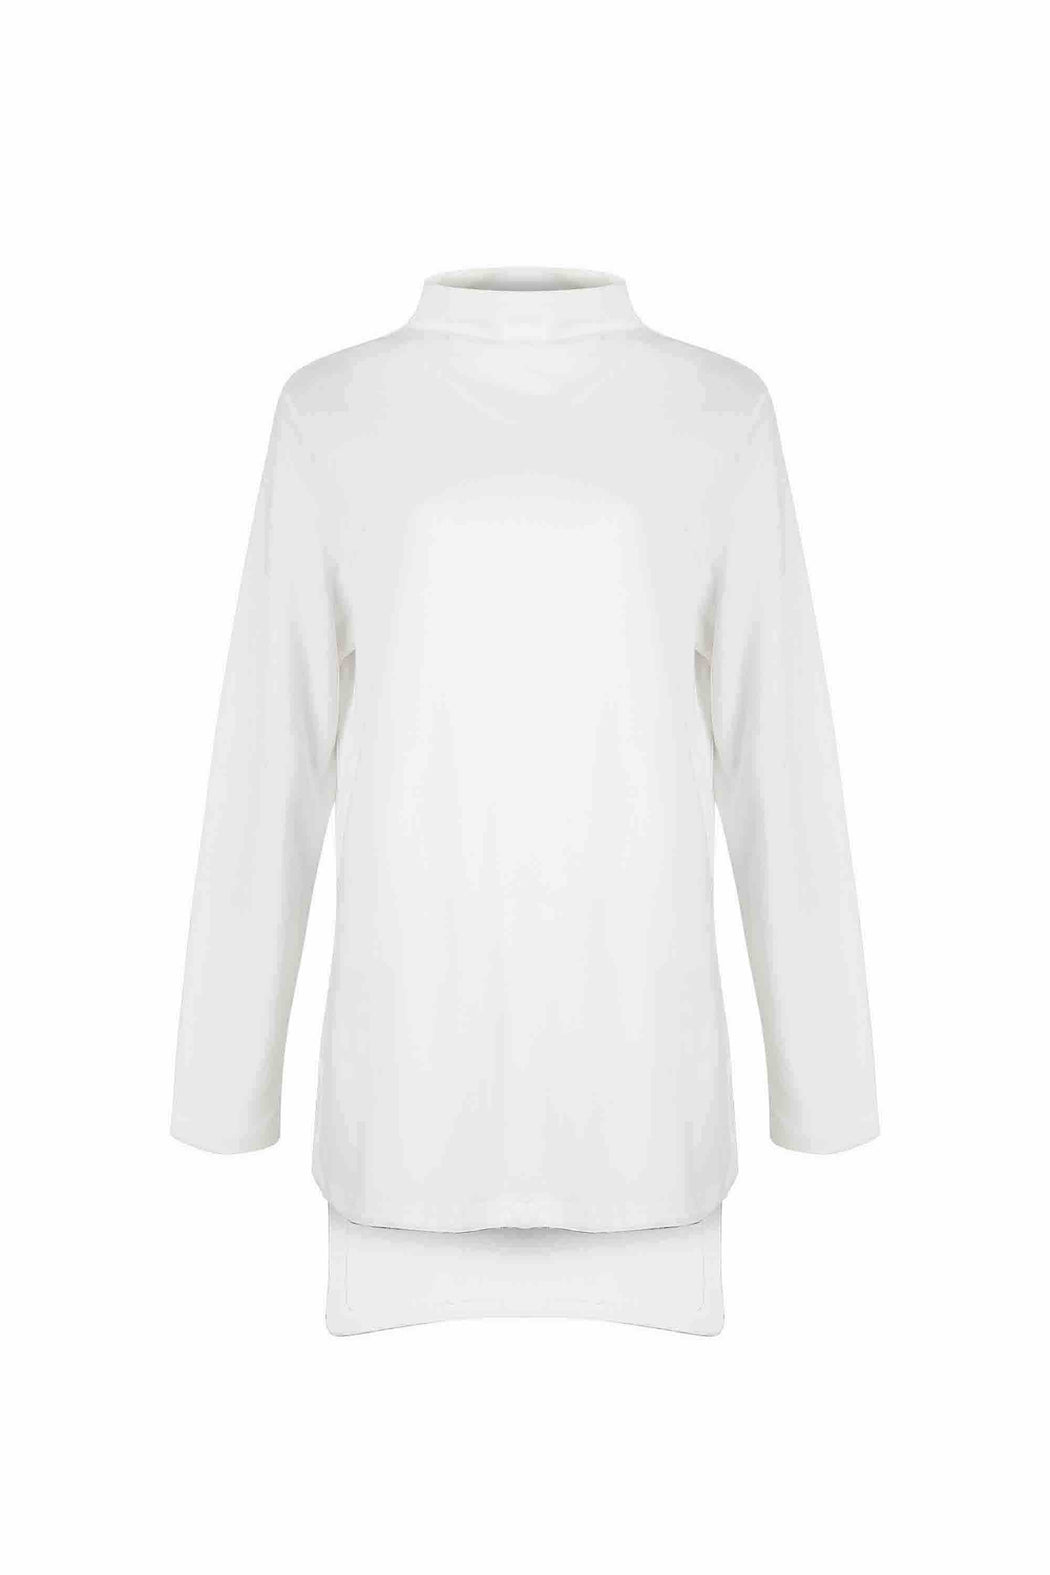 Front view of Women Longer Back Long Sleeve Sweatshirt, made with Organic Cotton in White